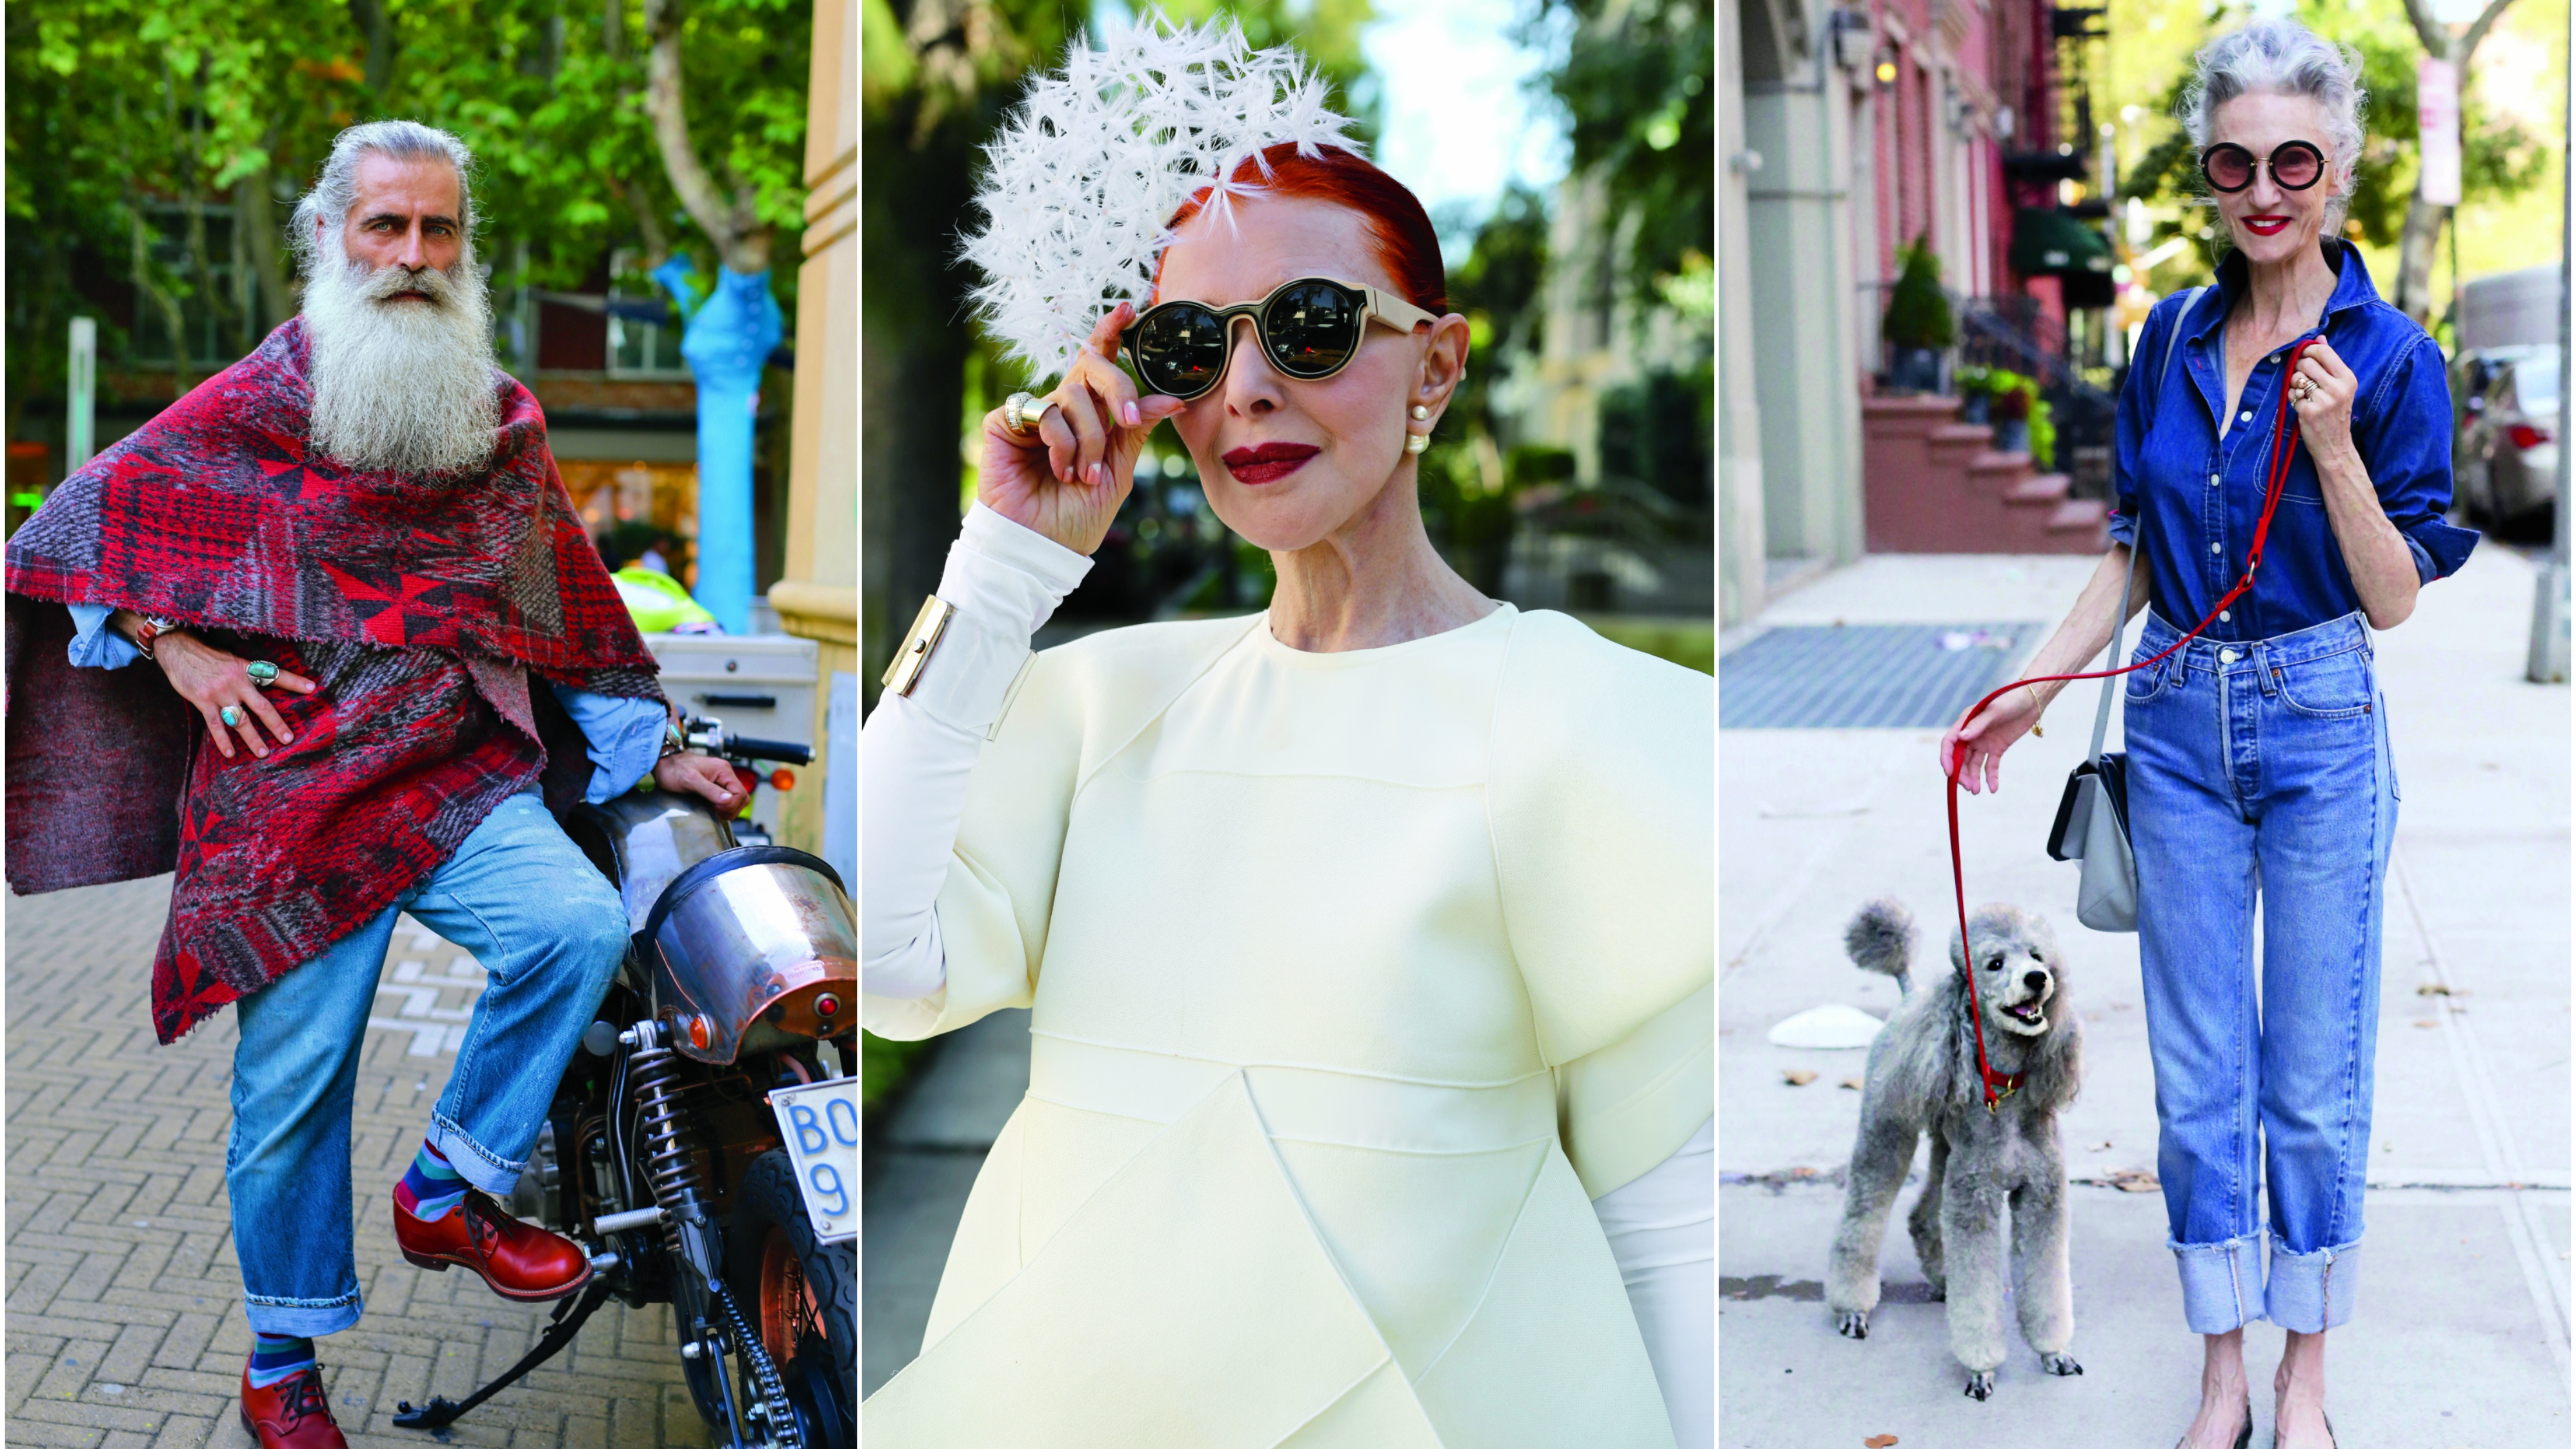 Photos: Ultra-fashionable seniors are proof that style can get better with age